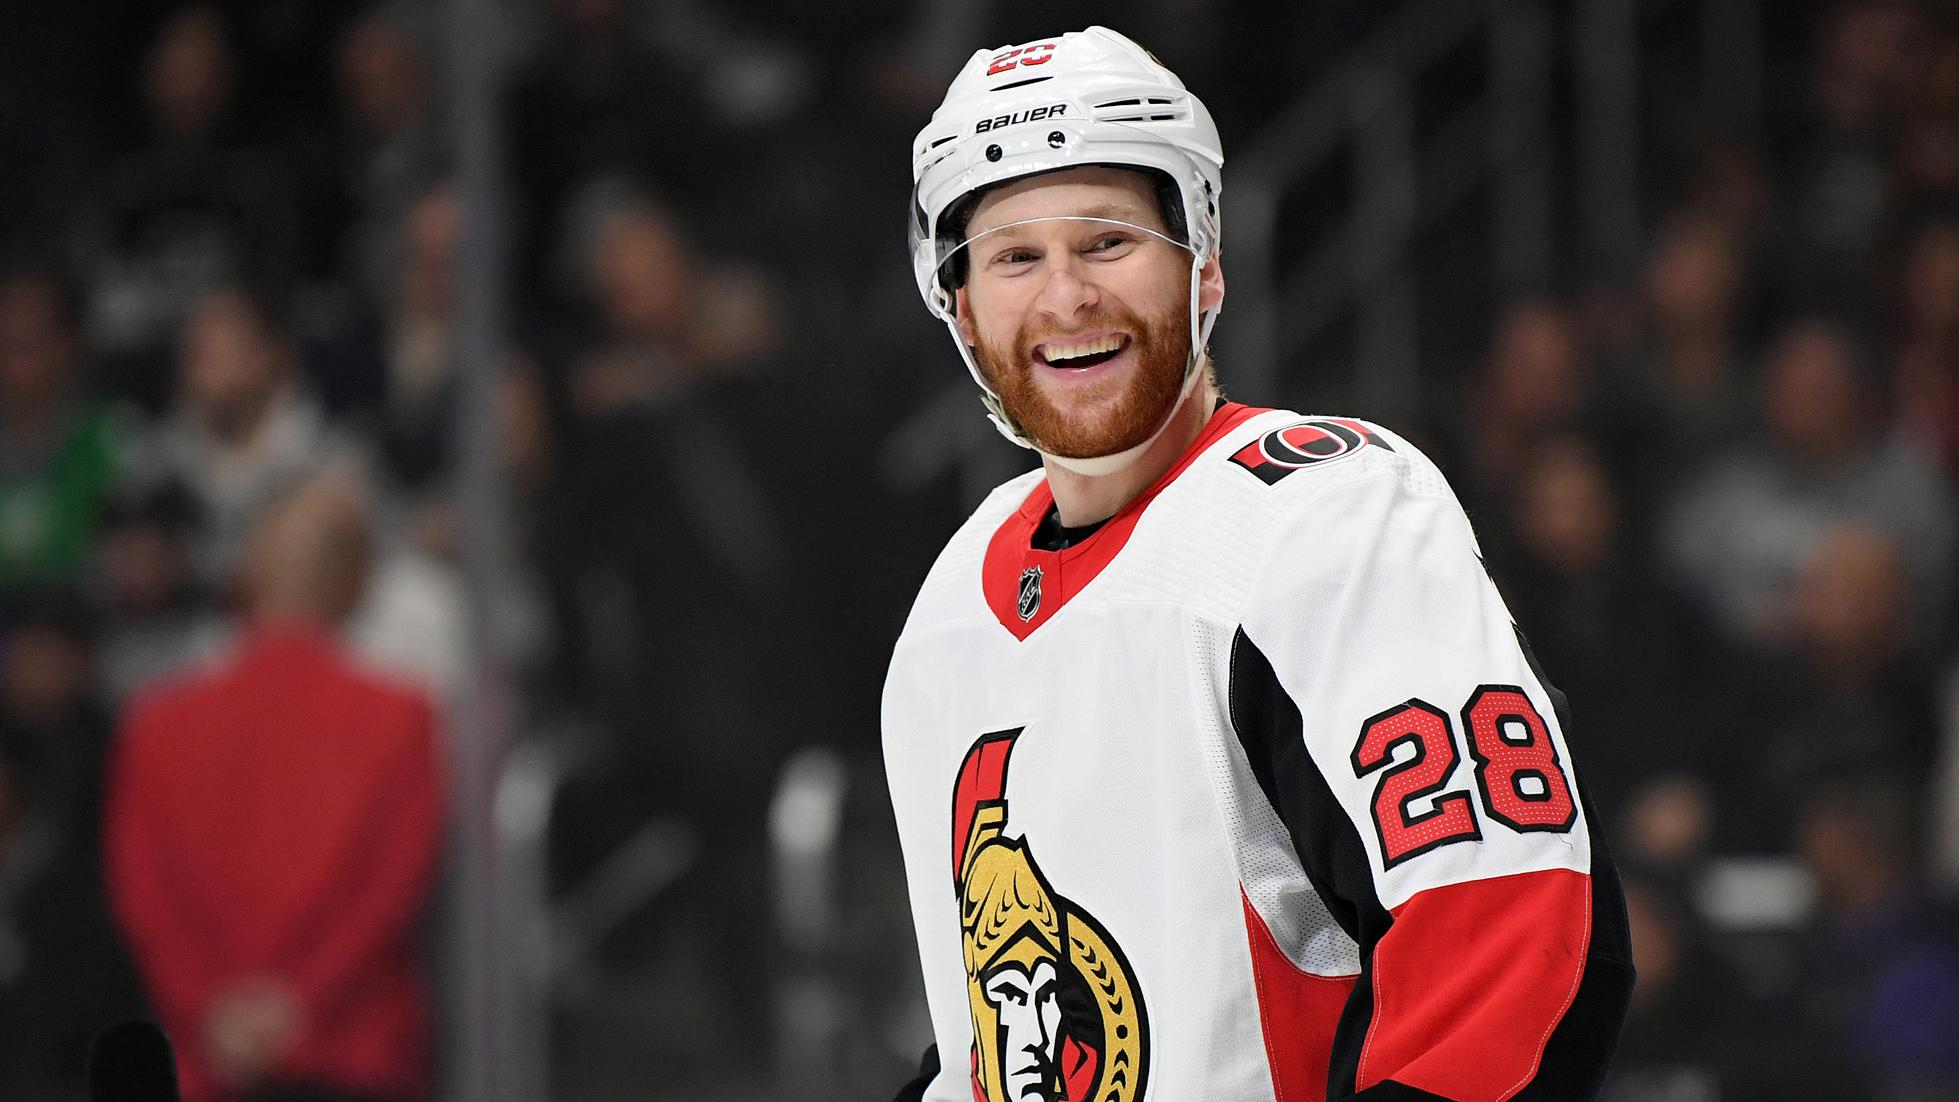 LOS ANGELES, CALIFORNIA - MARCH 11:  Connor Brown #28 of the Ottawa Senators laughs before a face off during the second period against the Los Angeles Kings at Staples Center on March 11, 2020 in Los Angeles, California. (Photo by Harry How/Getty Images)